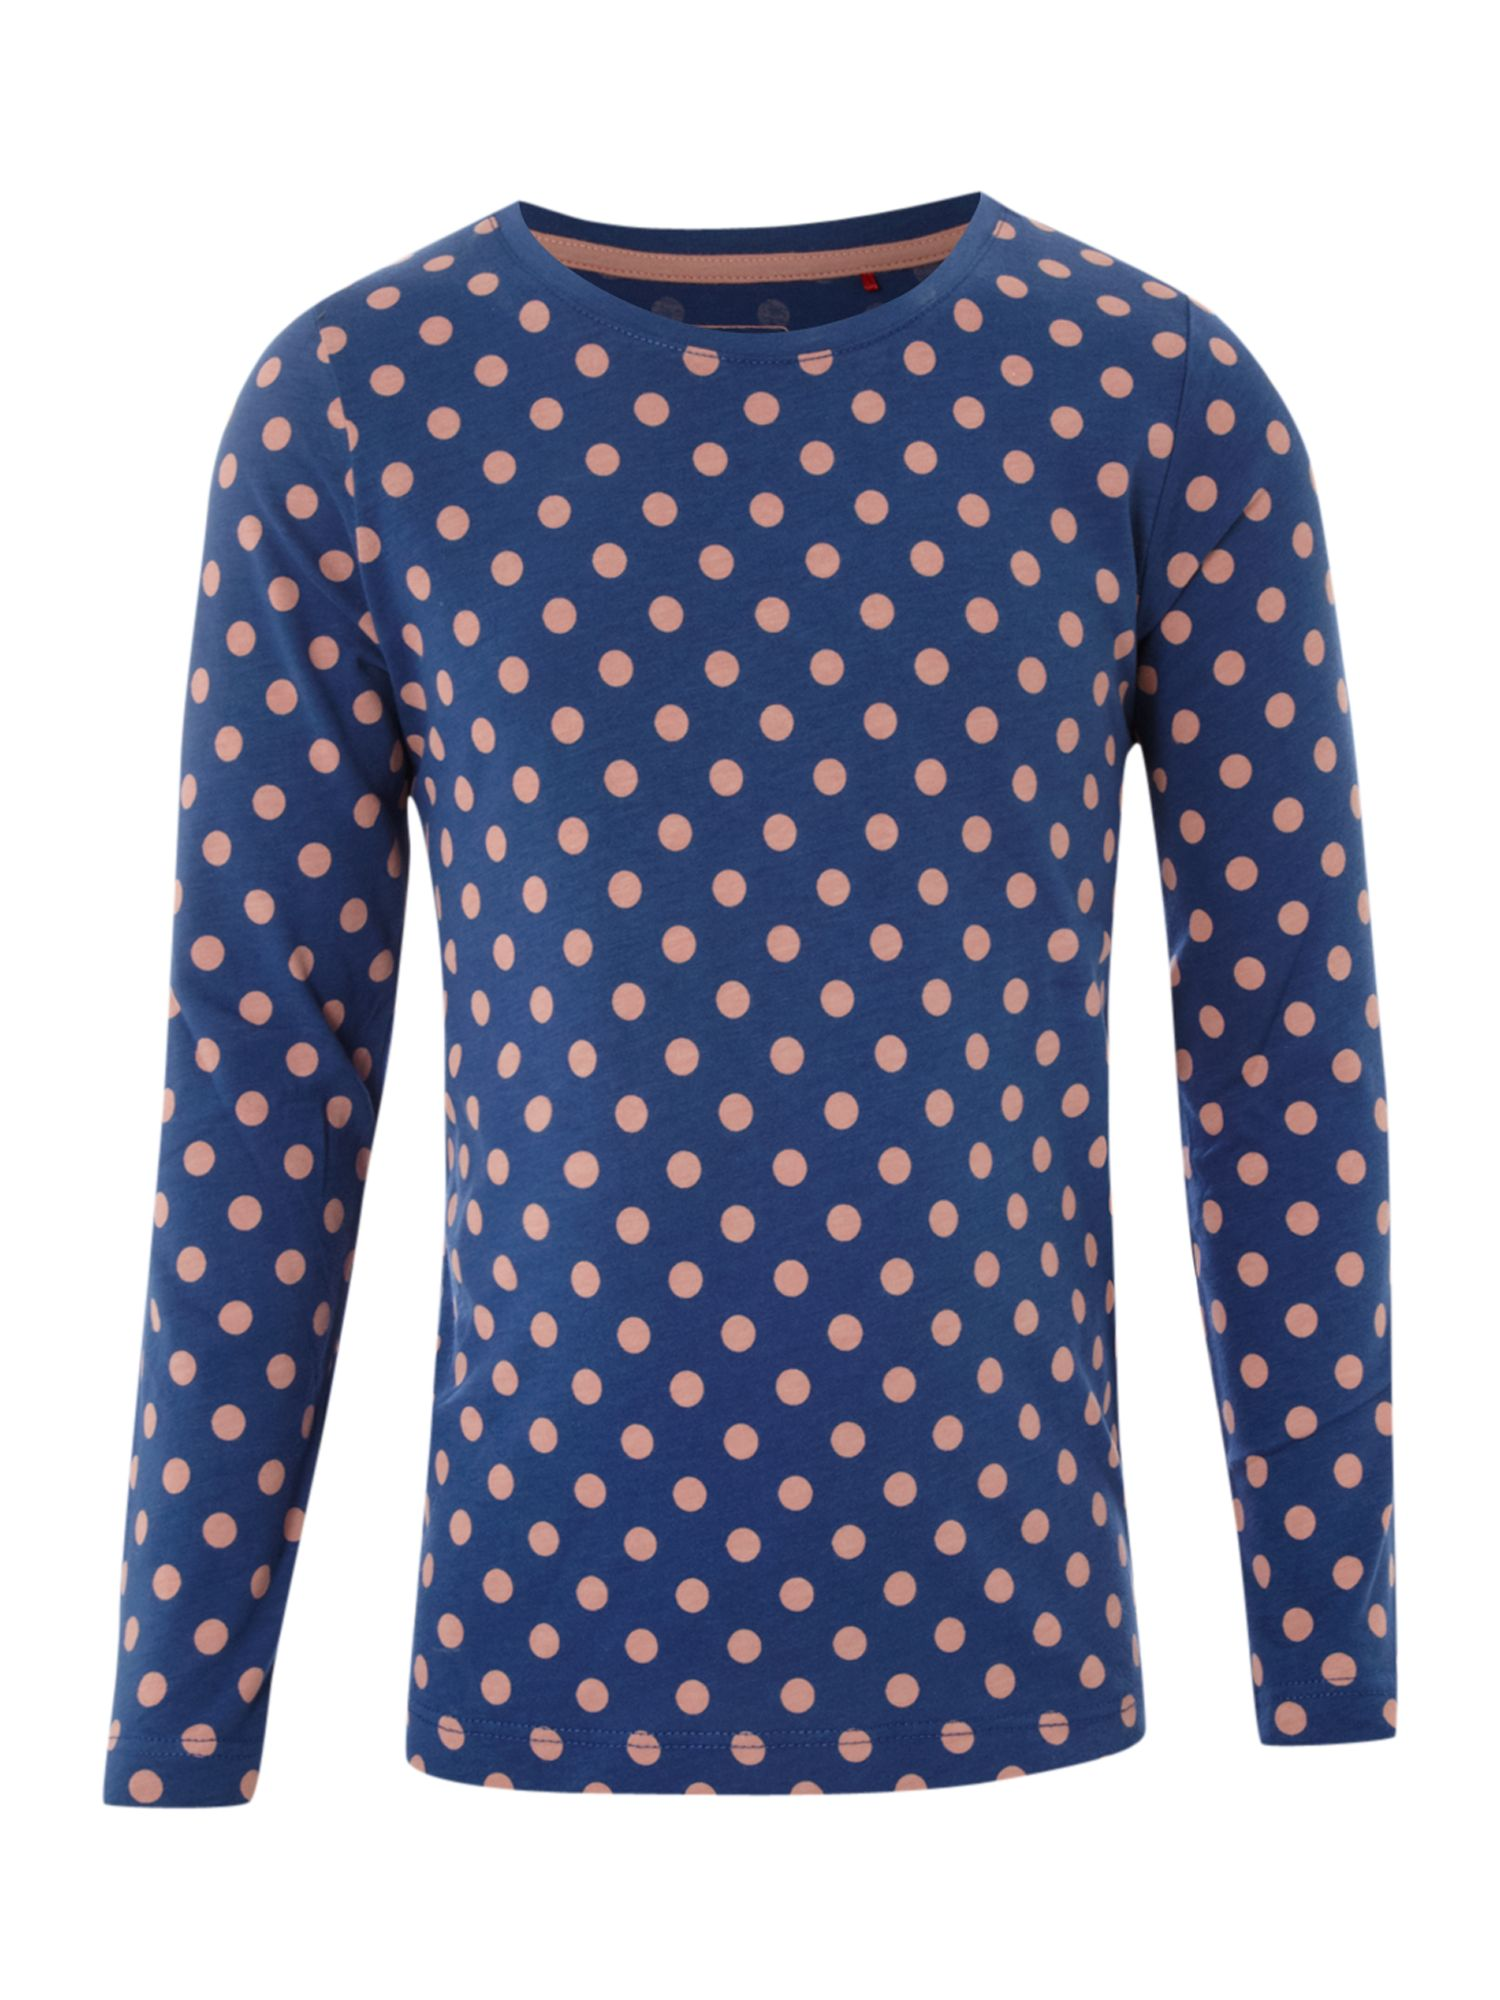 Esprit Long sleeve printed t-shirt, Blue 161977724 product image